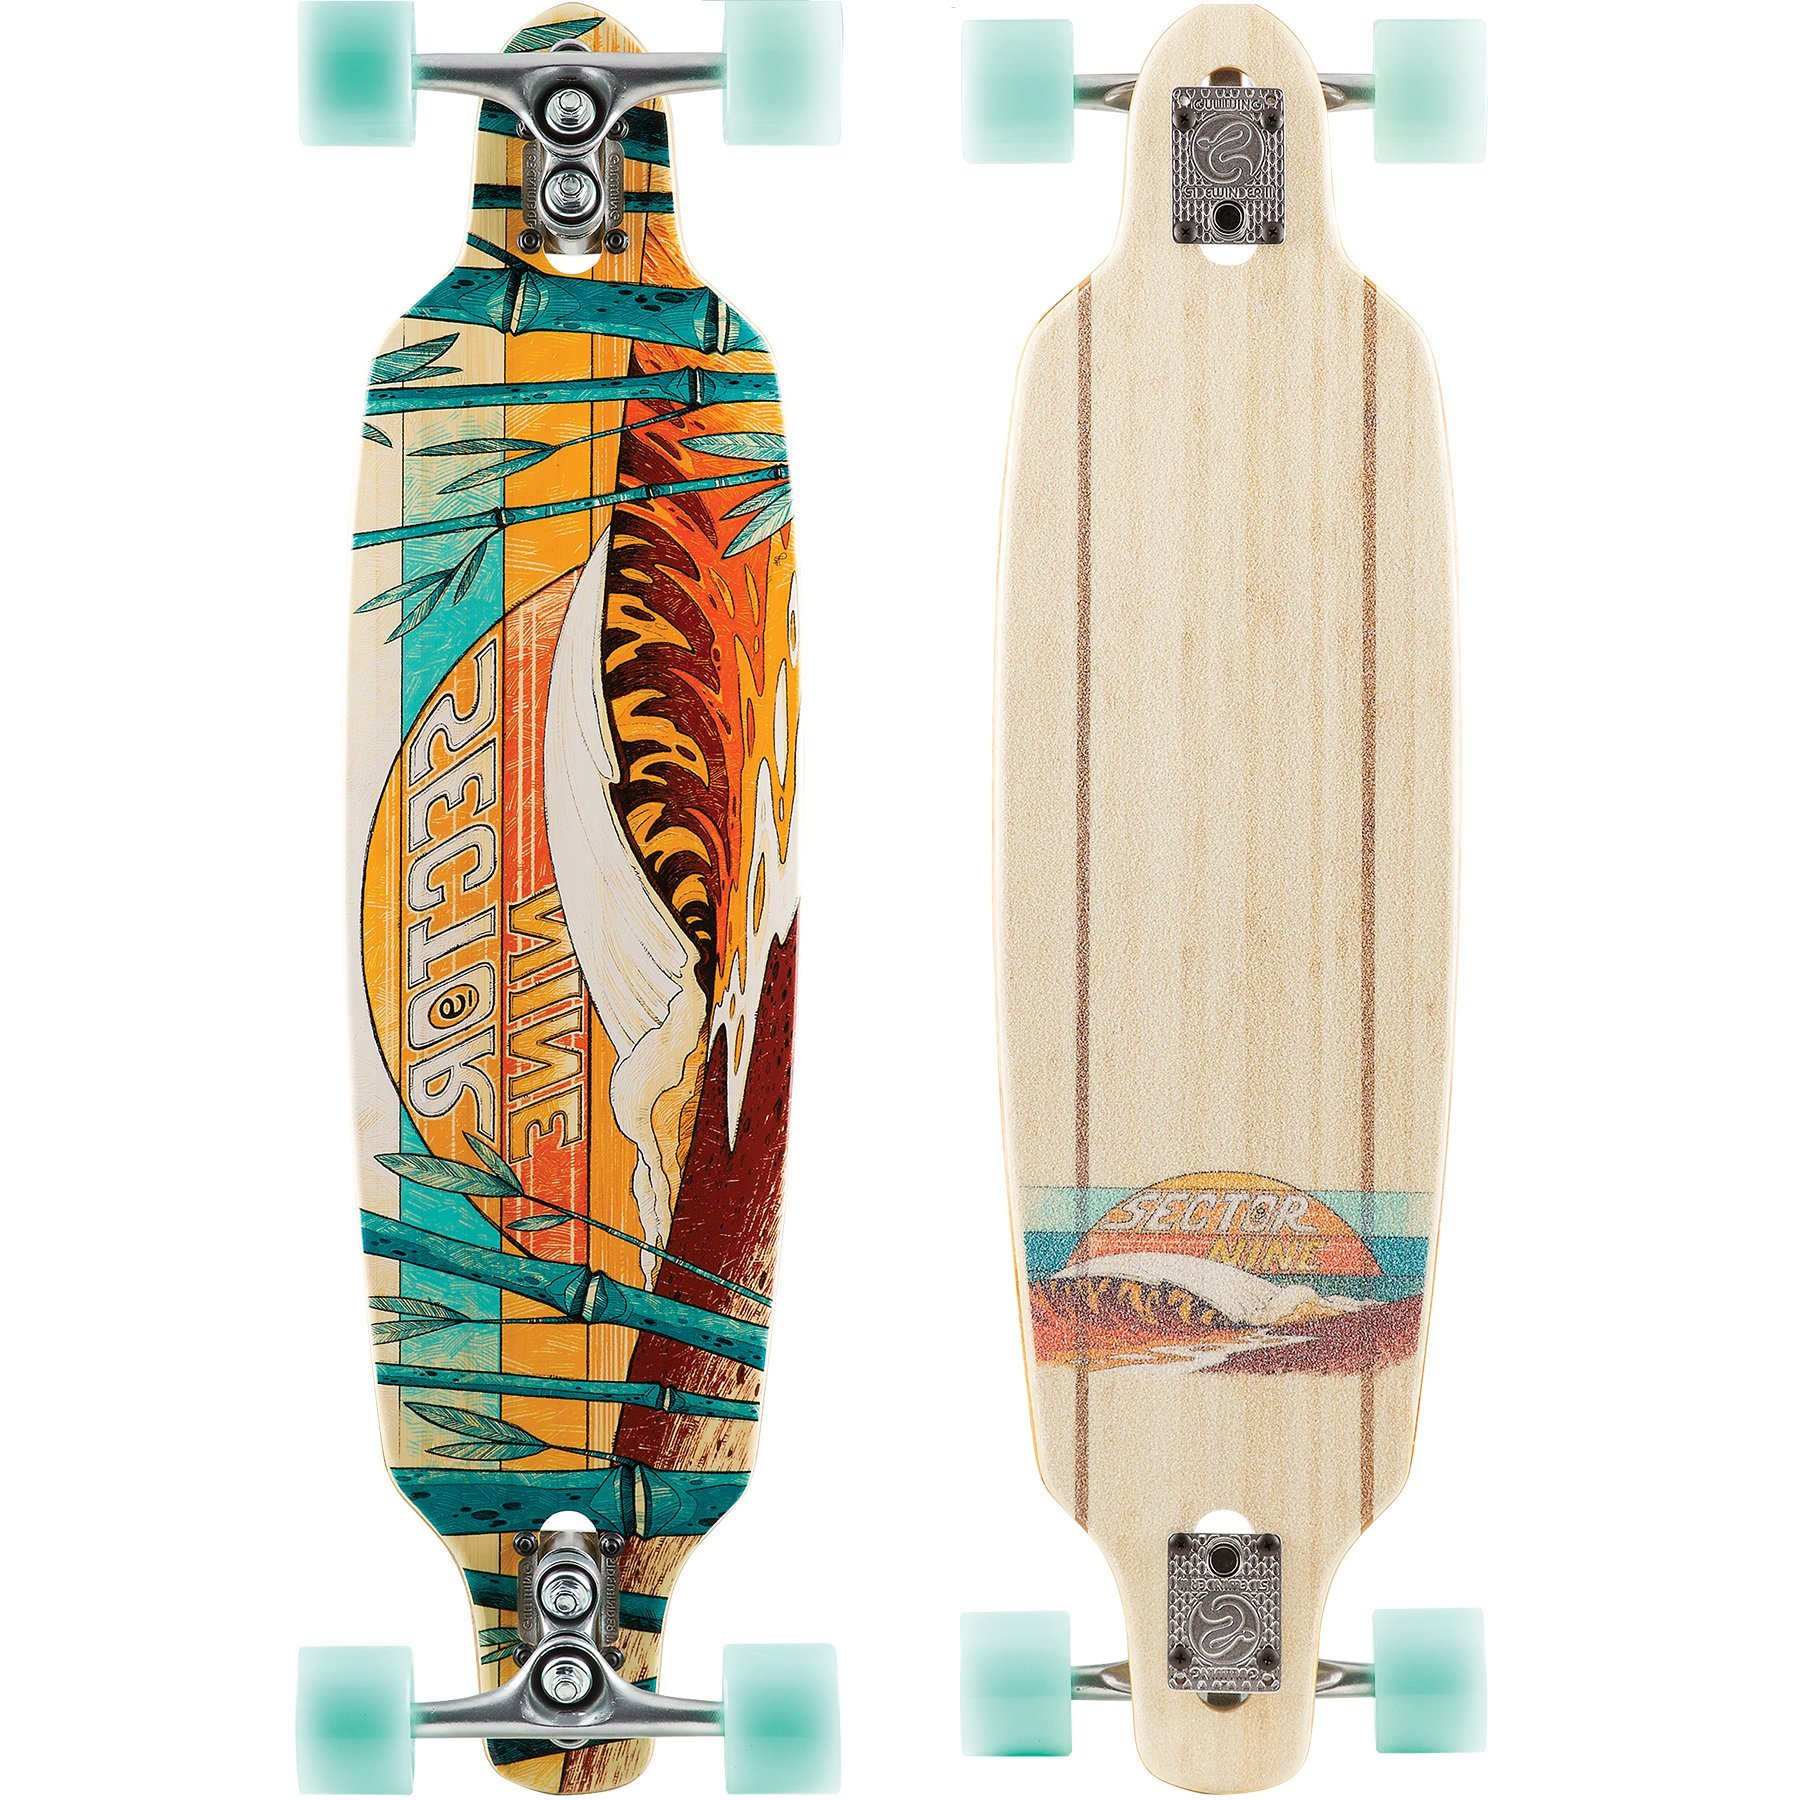 Sector 9 Bamboo Series Shoots 33.5'' Complete Longboard by Sector 9